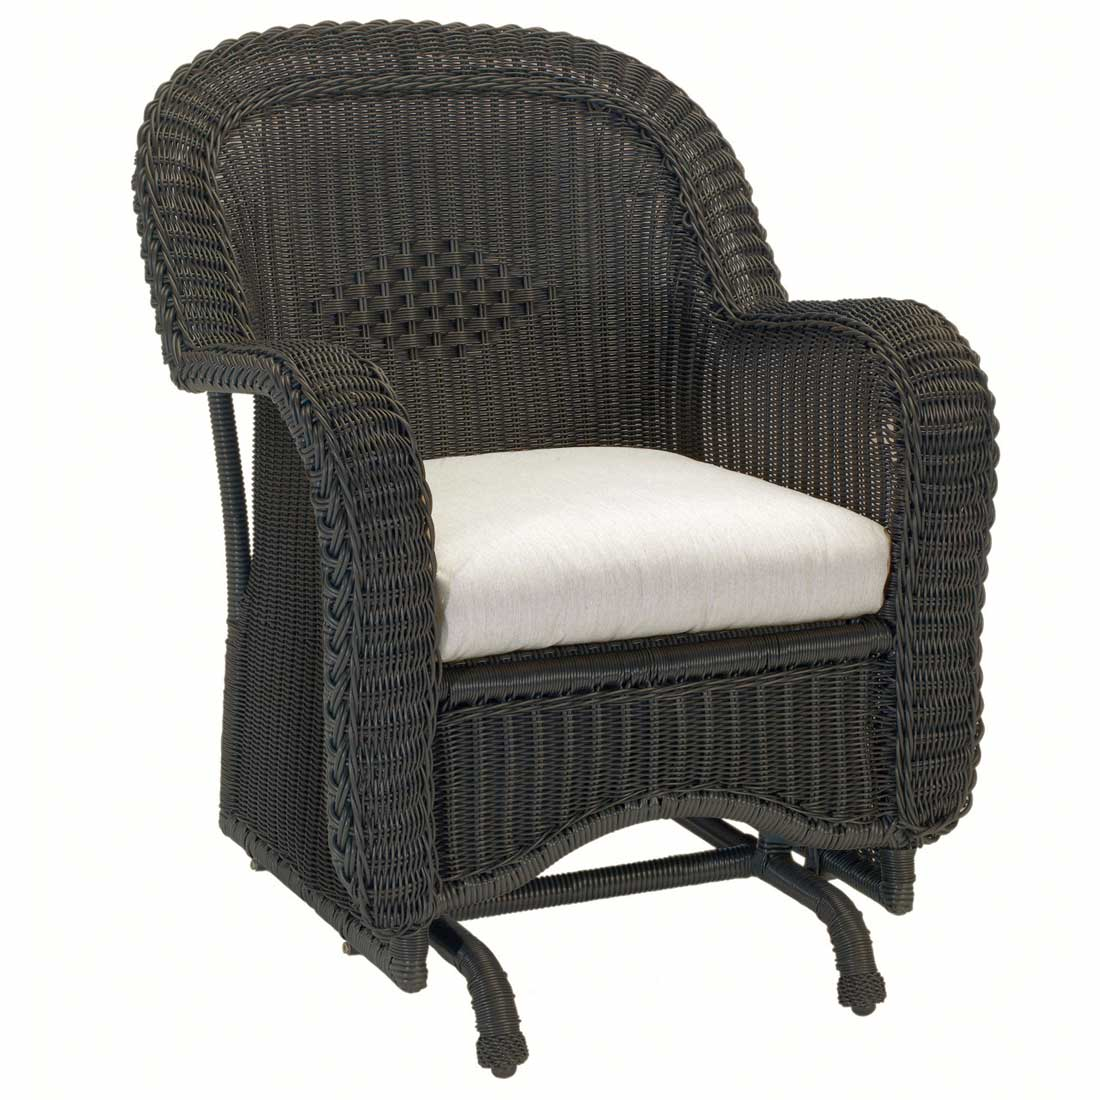 Black Wicker Rocking Chairs Classic Outdoor Wicker Single Glider